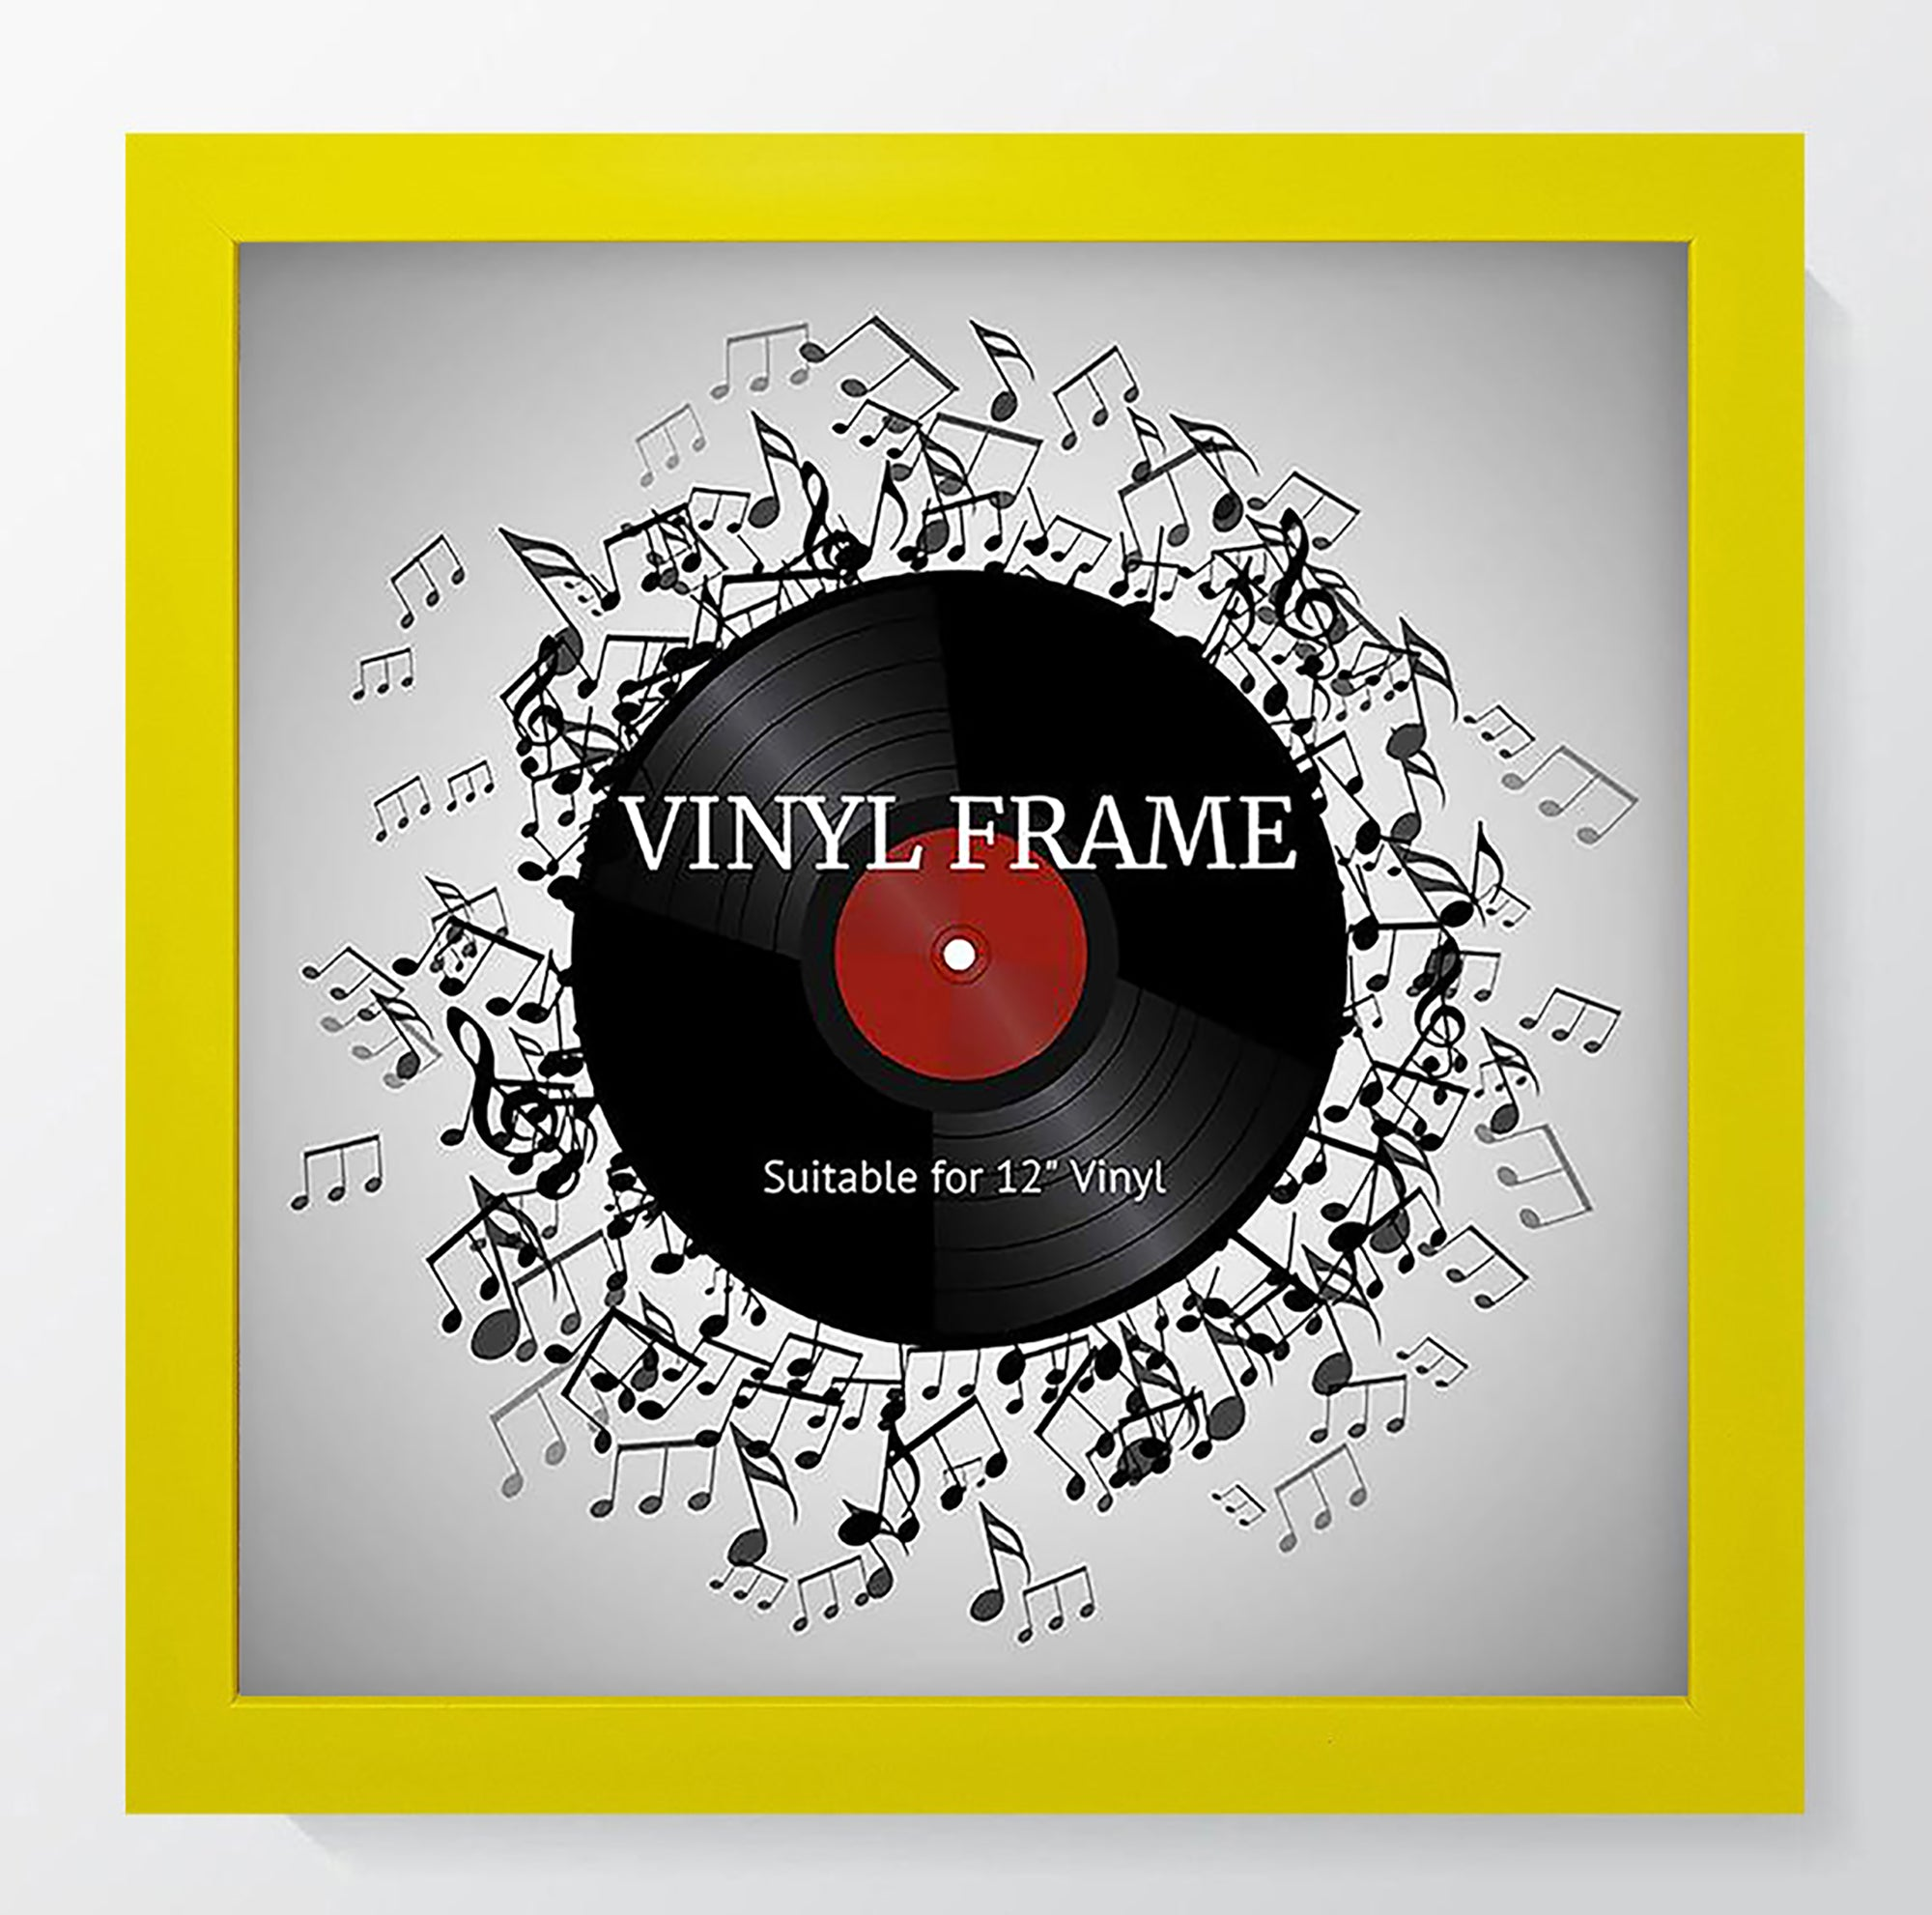 "Oxford Yellow Photo Frame Suitable for a 12"" Vinyl Album"